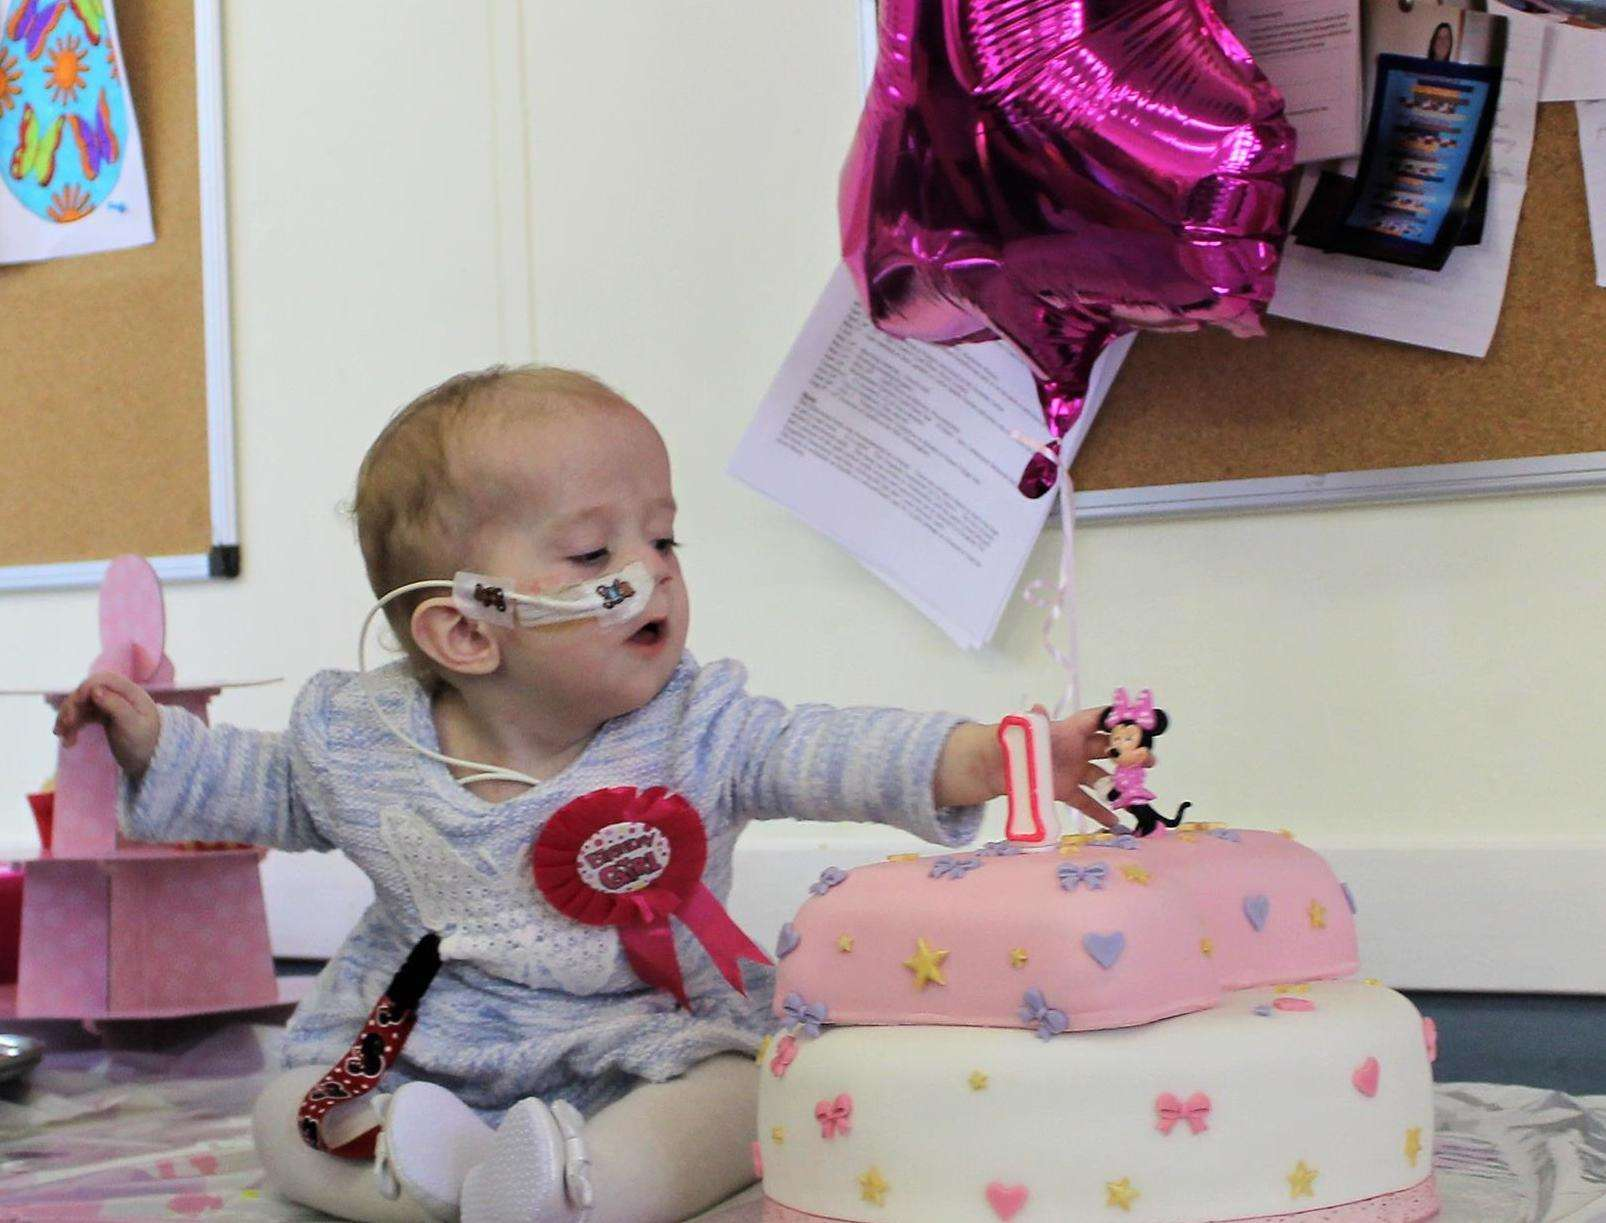 Natalie-Rose Denney-Hook has had three operations called off to replace a feeding tube